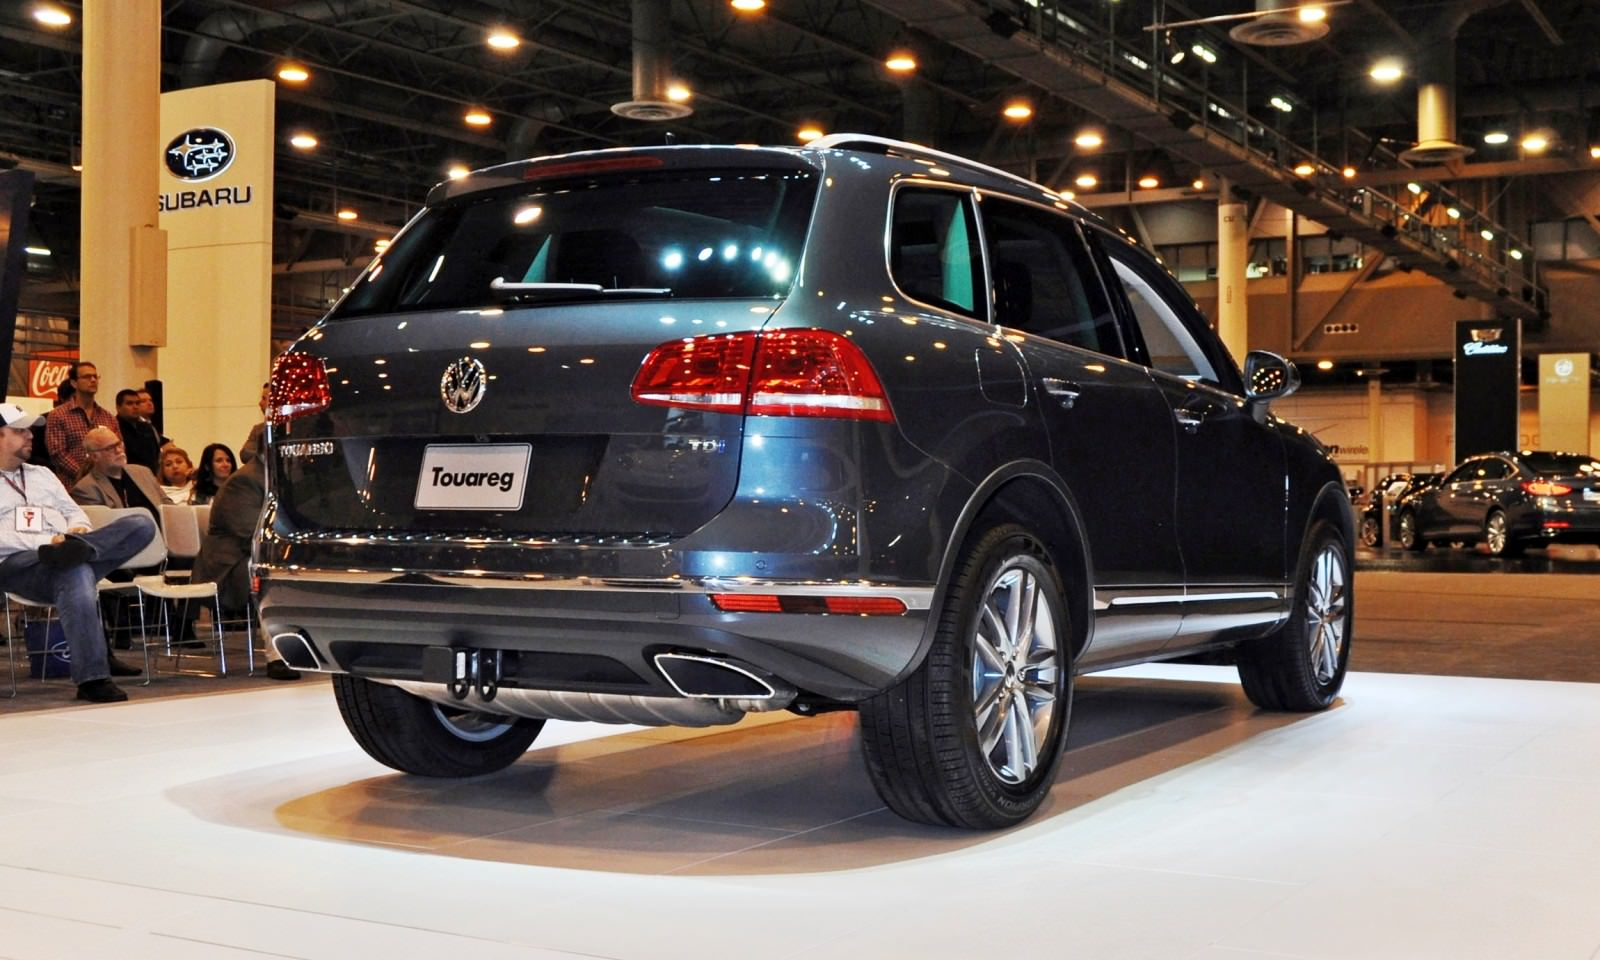 First Drive Review - 2015 Volkswagen Touareg TDI Feels Light, Quick and Lux 7